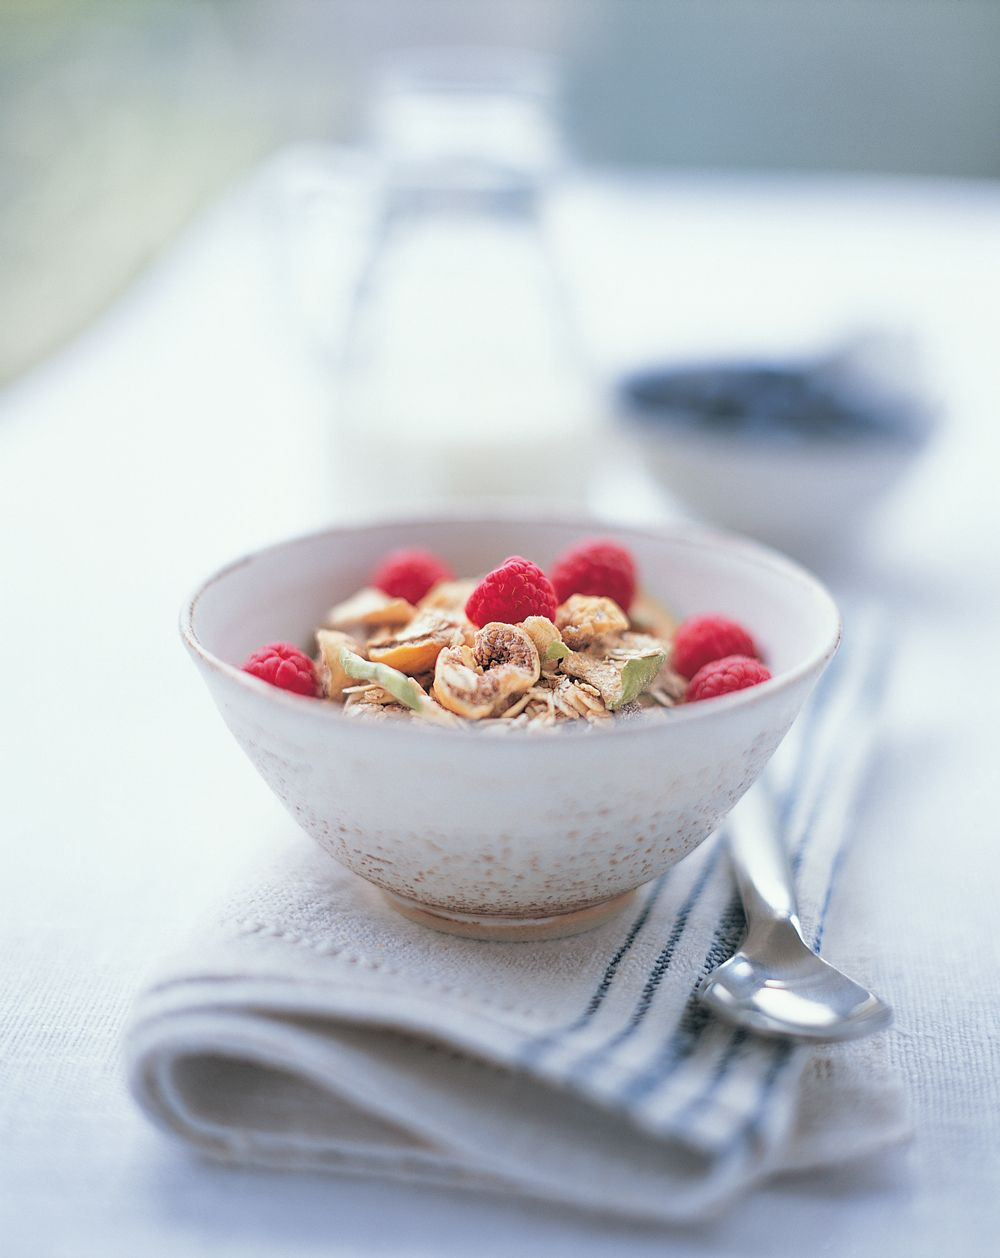 Healthy Breakfast For College Students  Starting Your Day f Right Healthy Breakfasts for